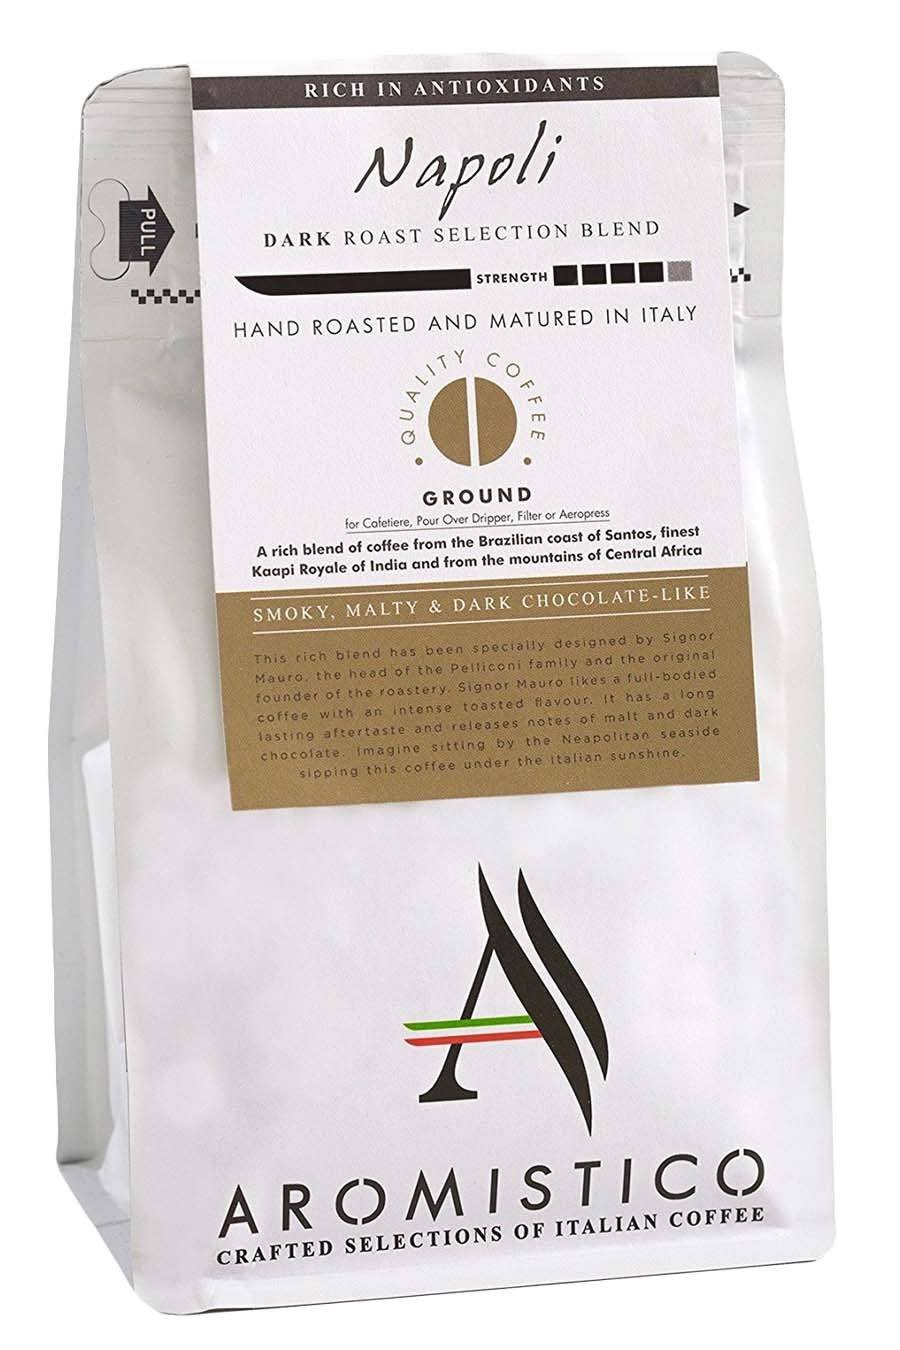 Aromistico Rich Dark Roast Premium Italian Ground Coffee Napoli Blend